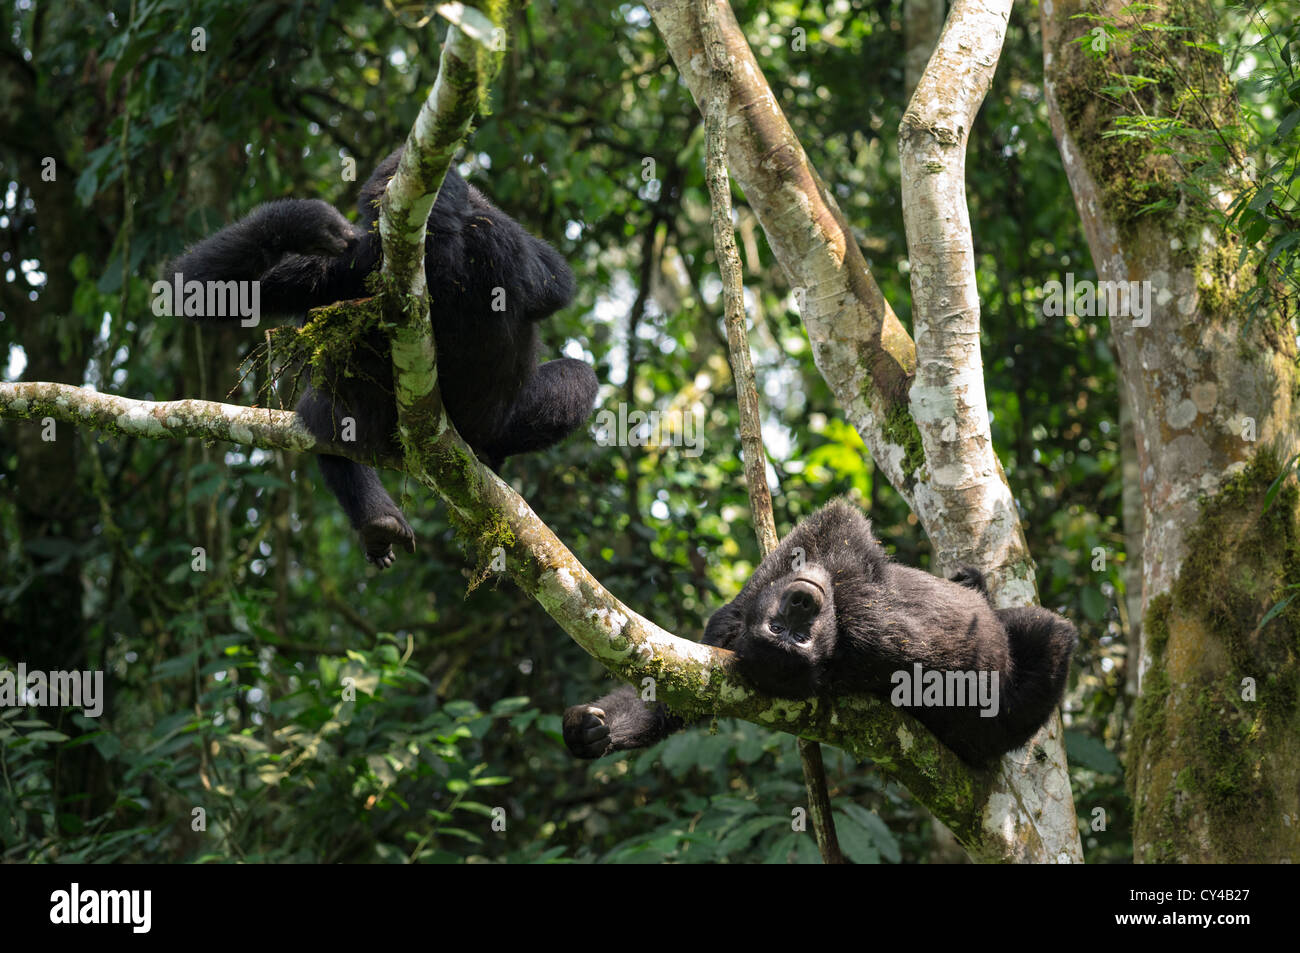 Mountain gorillas relaxing on a tree in the Bwindi Impenetrable Forest in Uganda. - Stock Image